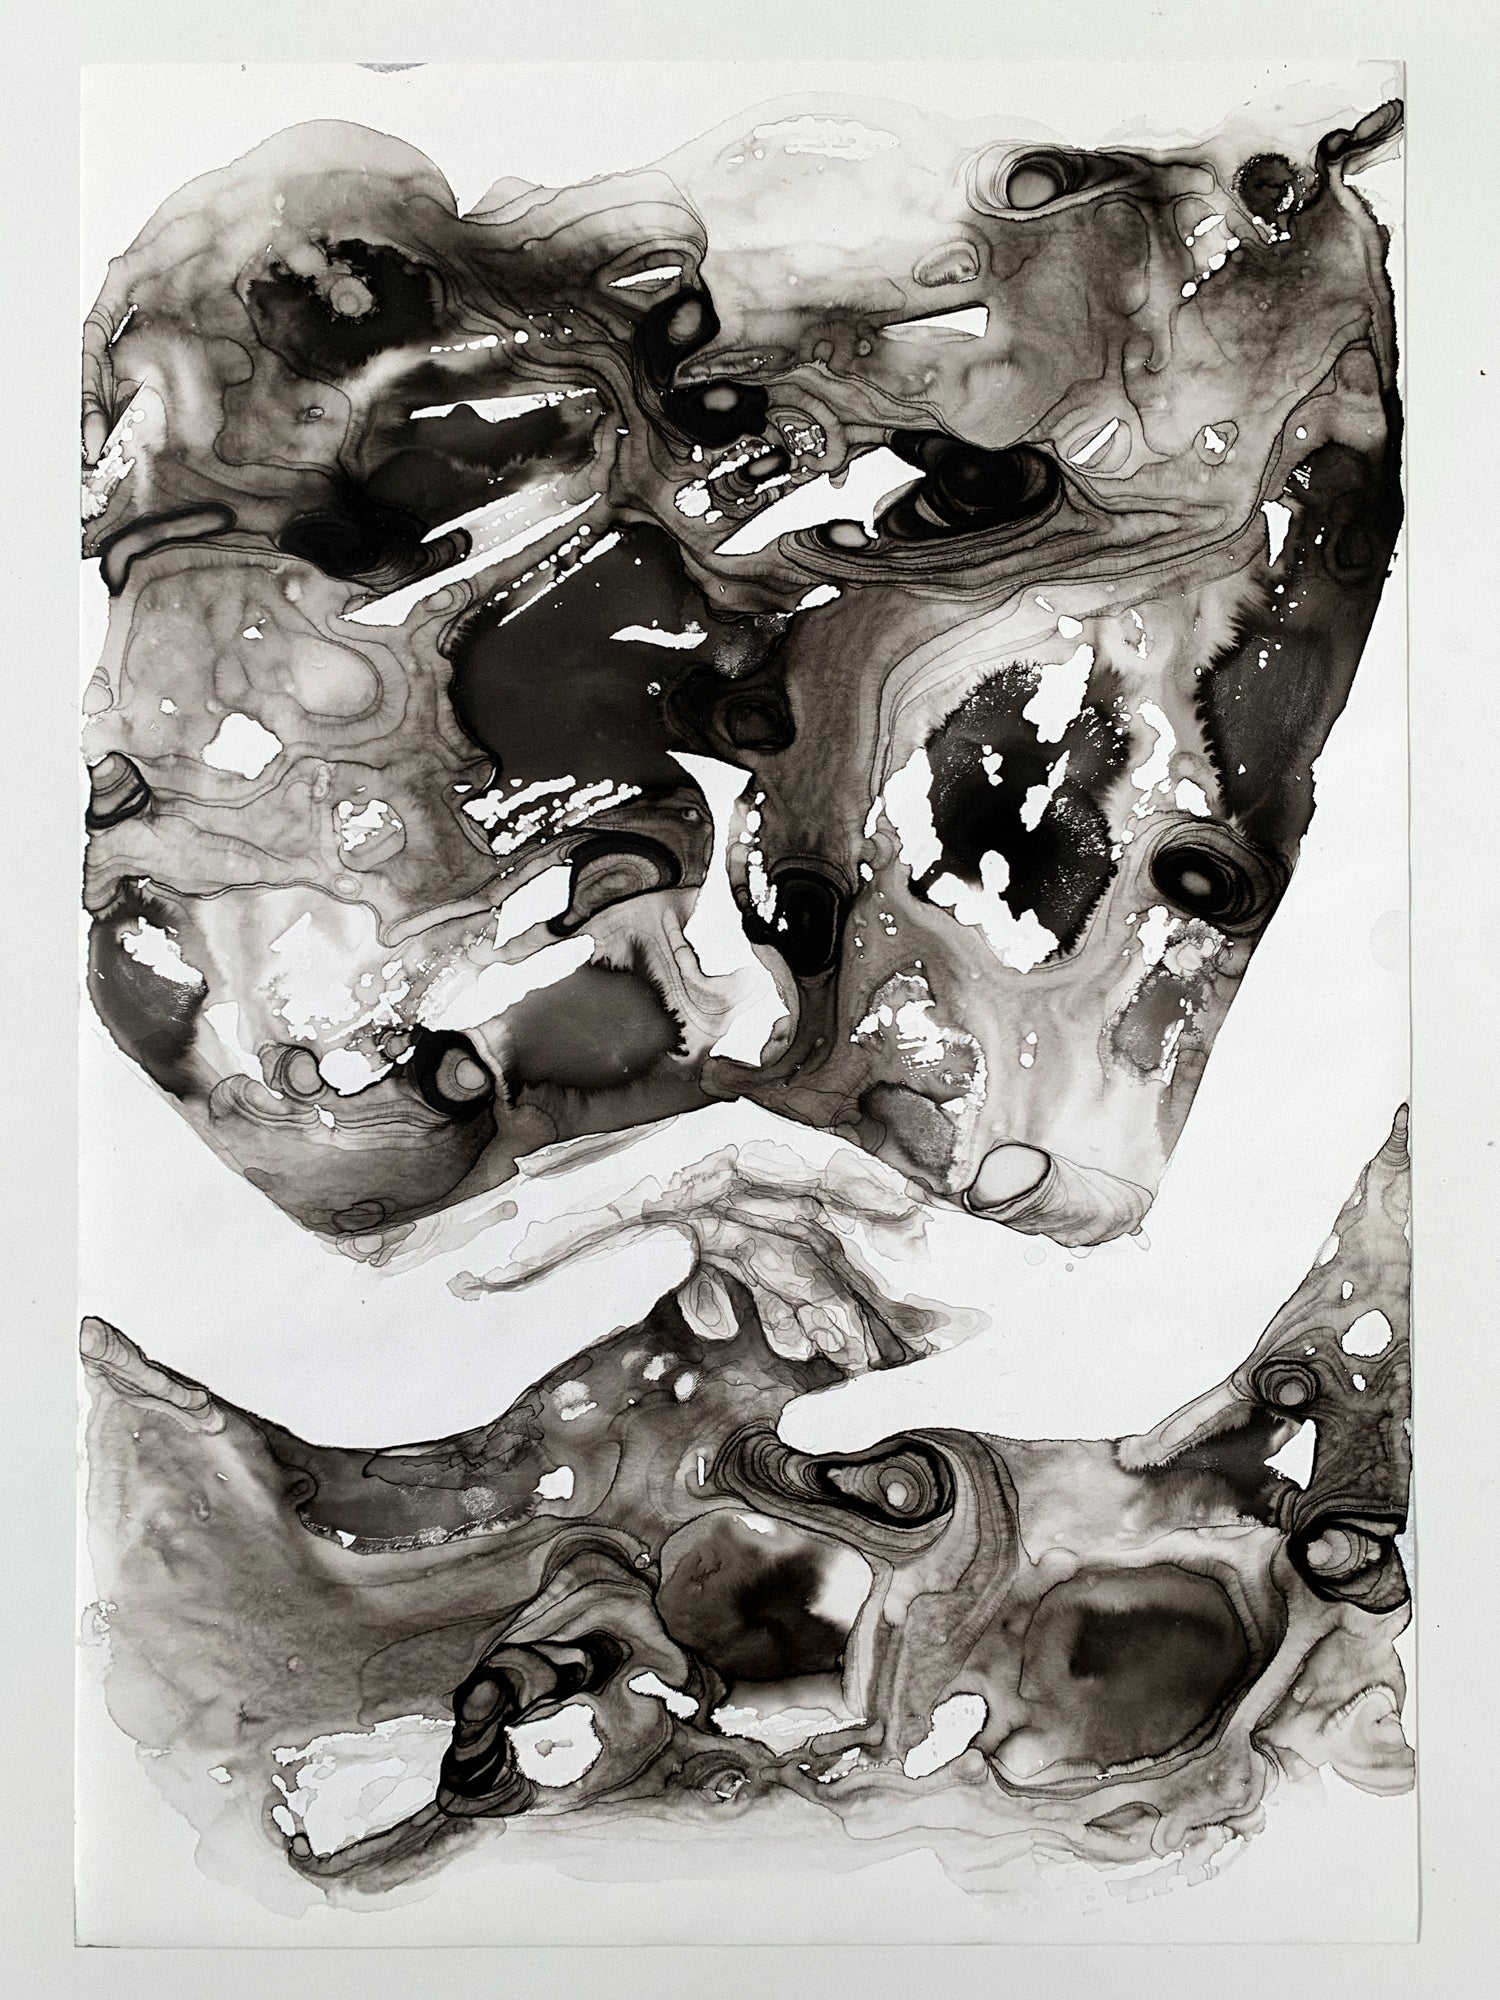 Agnes-Cecile dancing in the dark looking for you